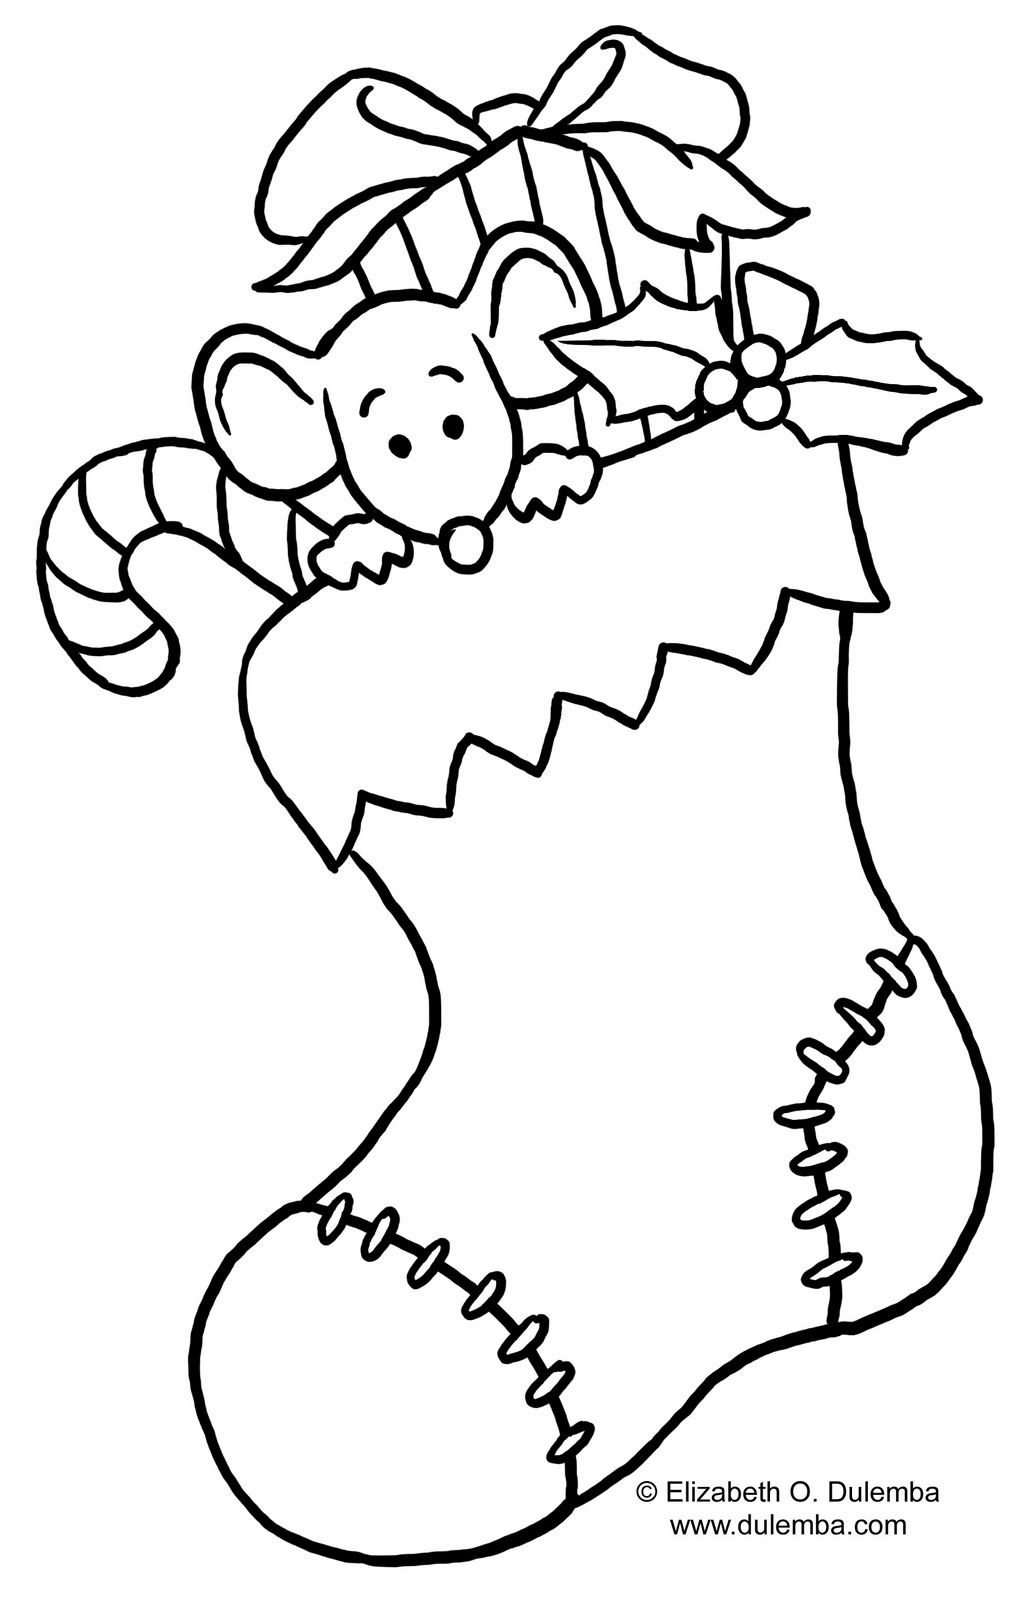 Christmas coloring sheets - there are lots of Xmas coloring pictures